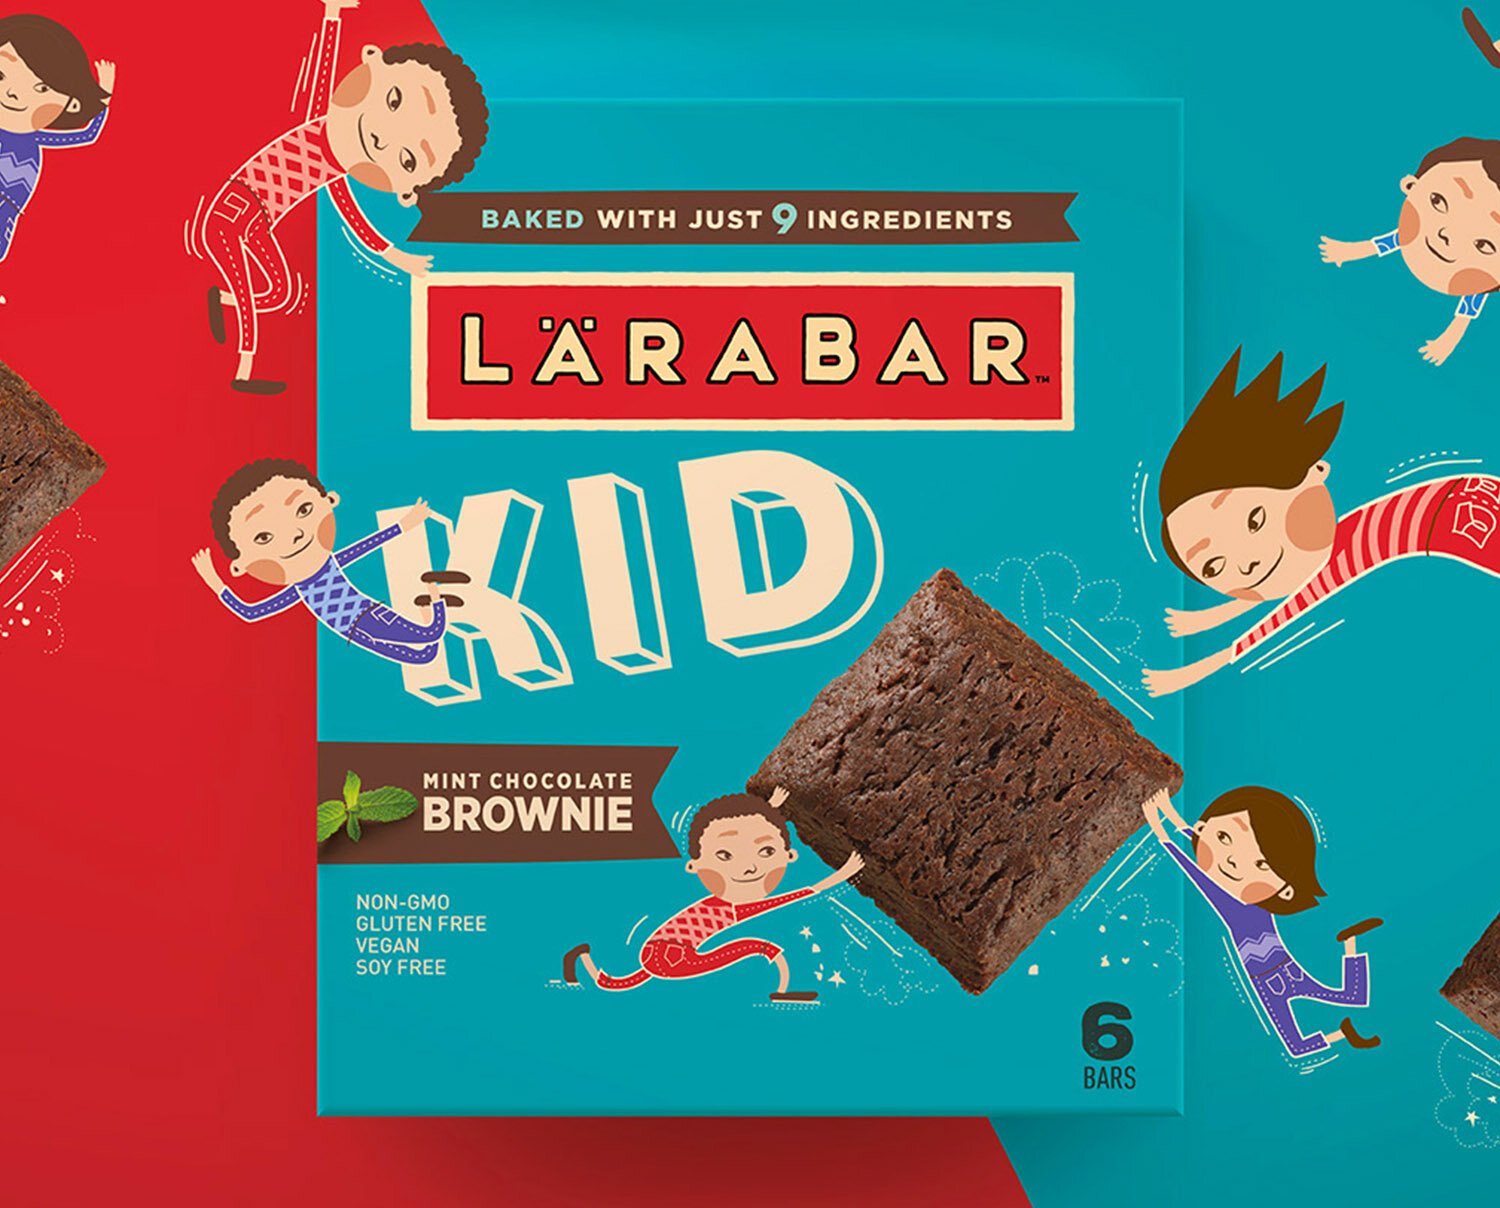 Lärabar Kid  Package Design